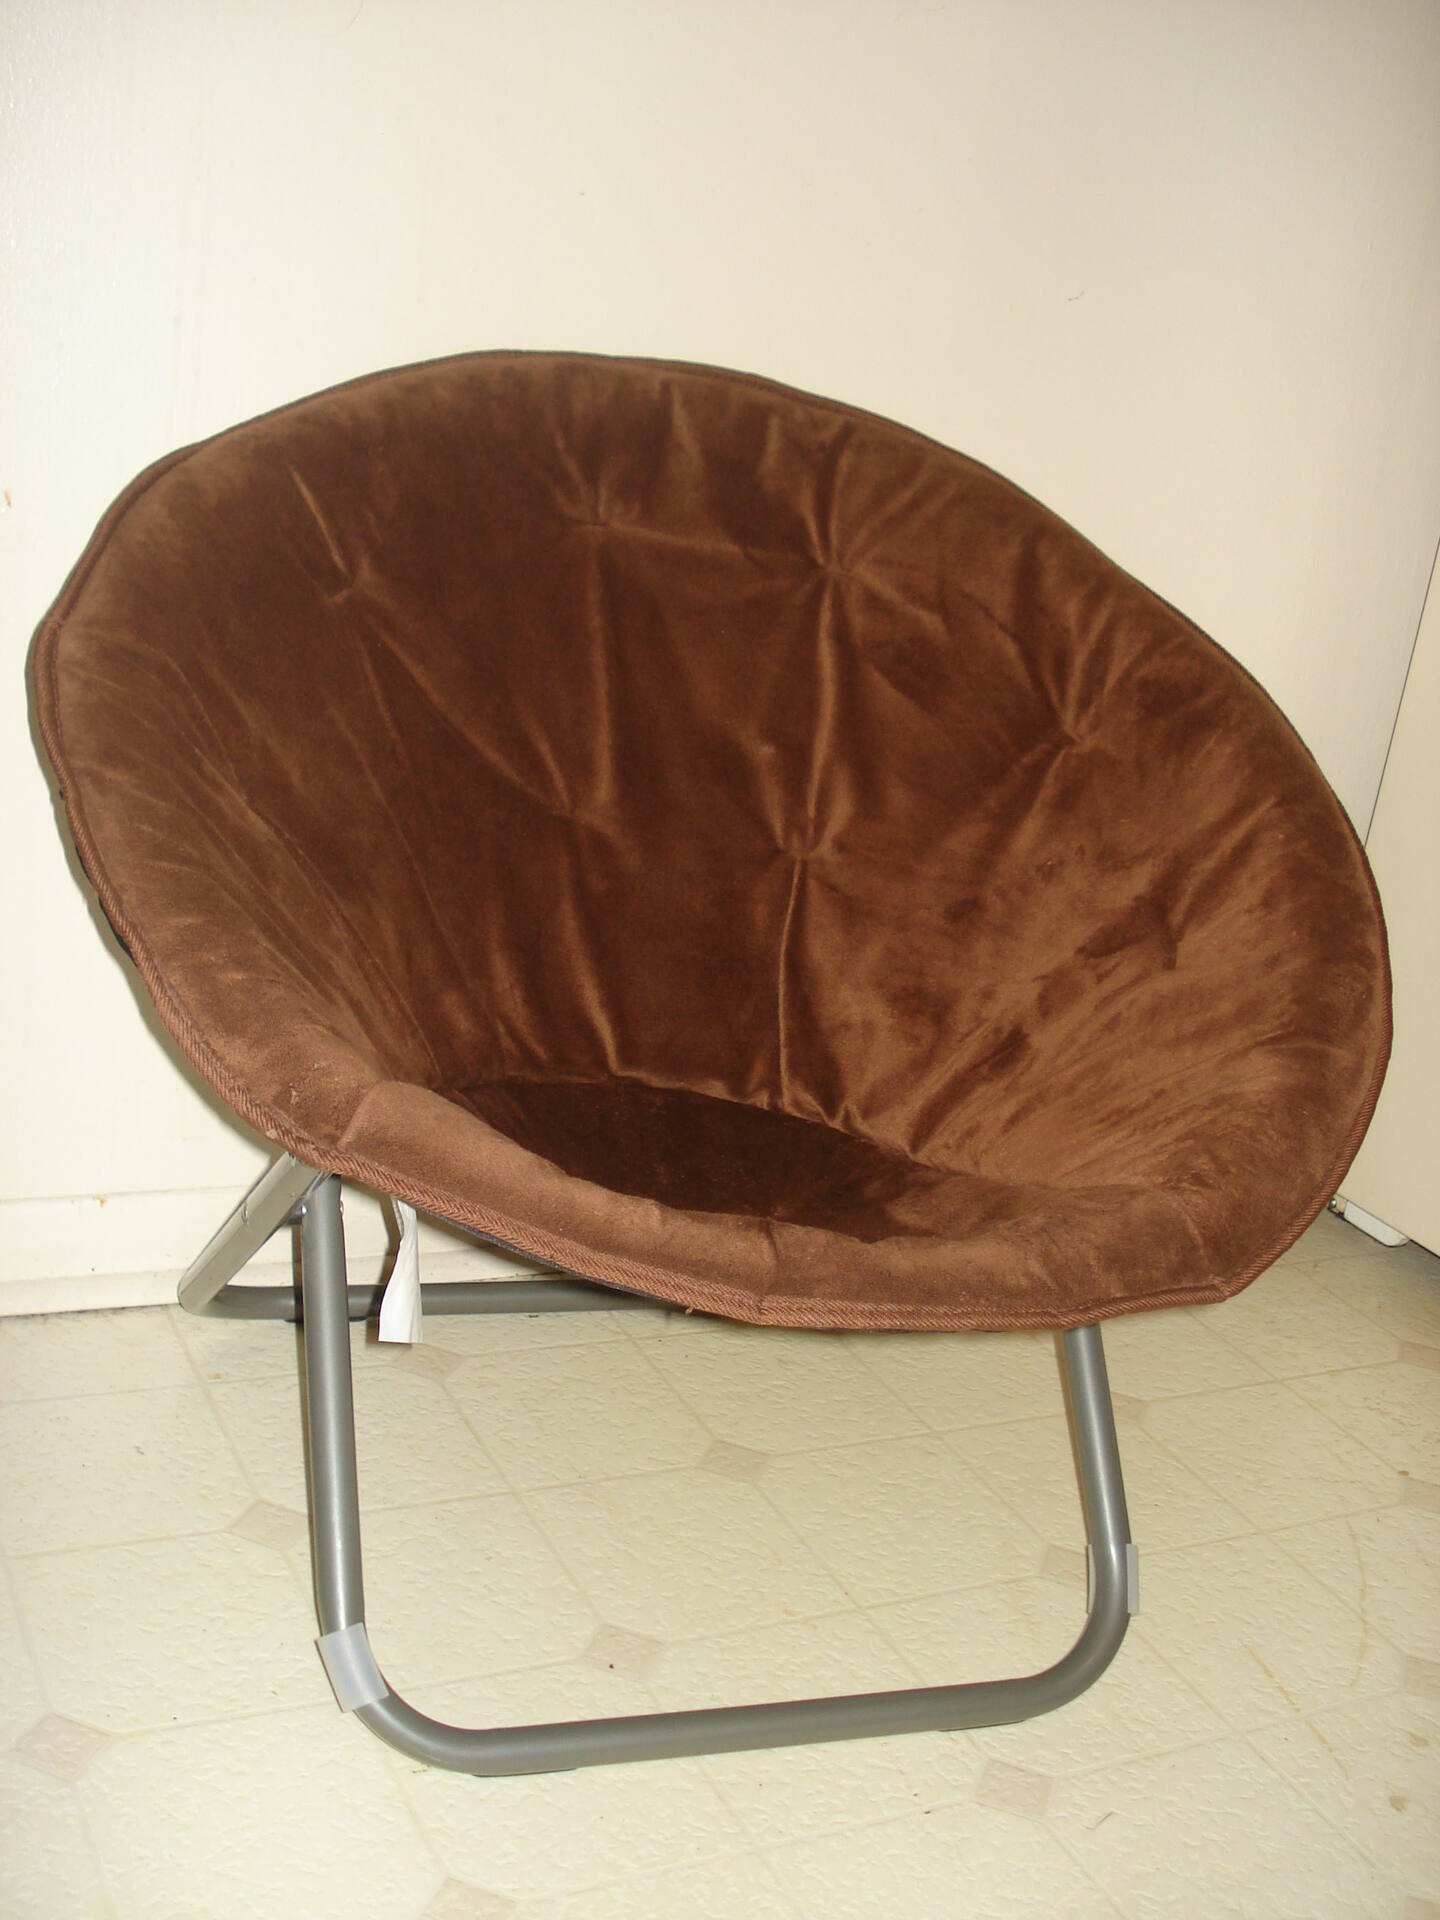 papasan chairs also called moon chair bigfootglobal